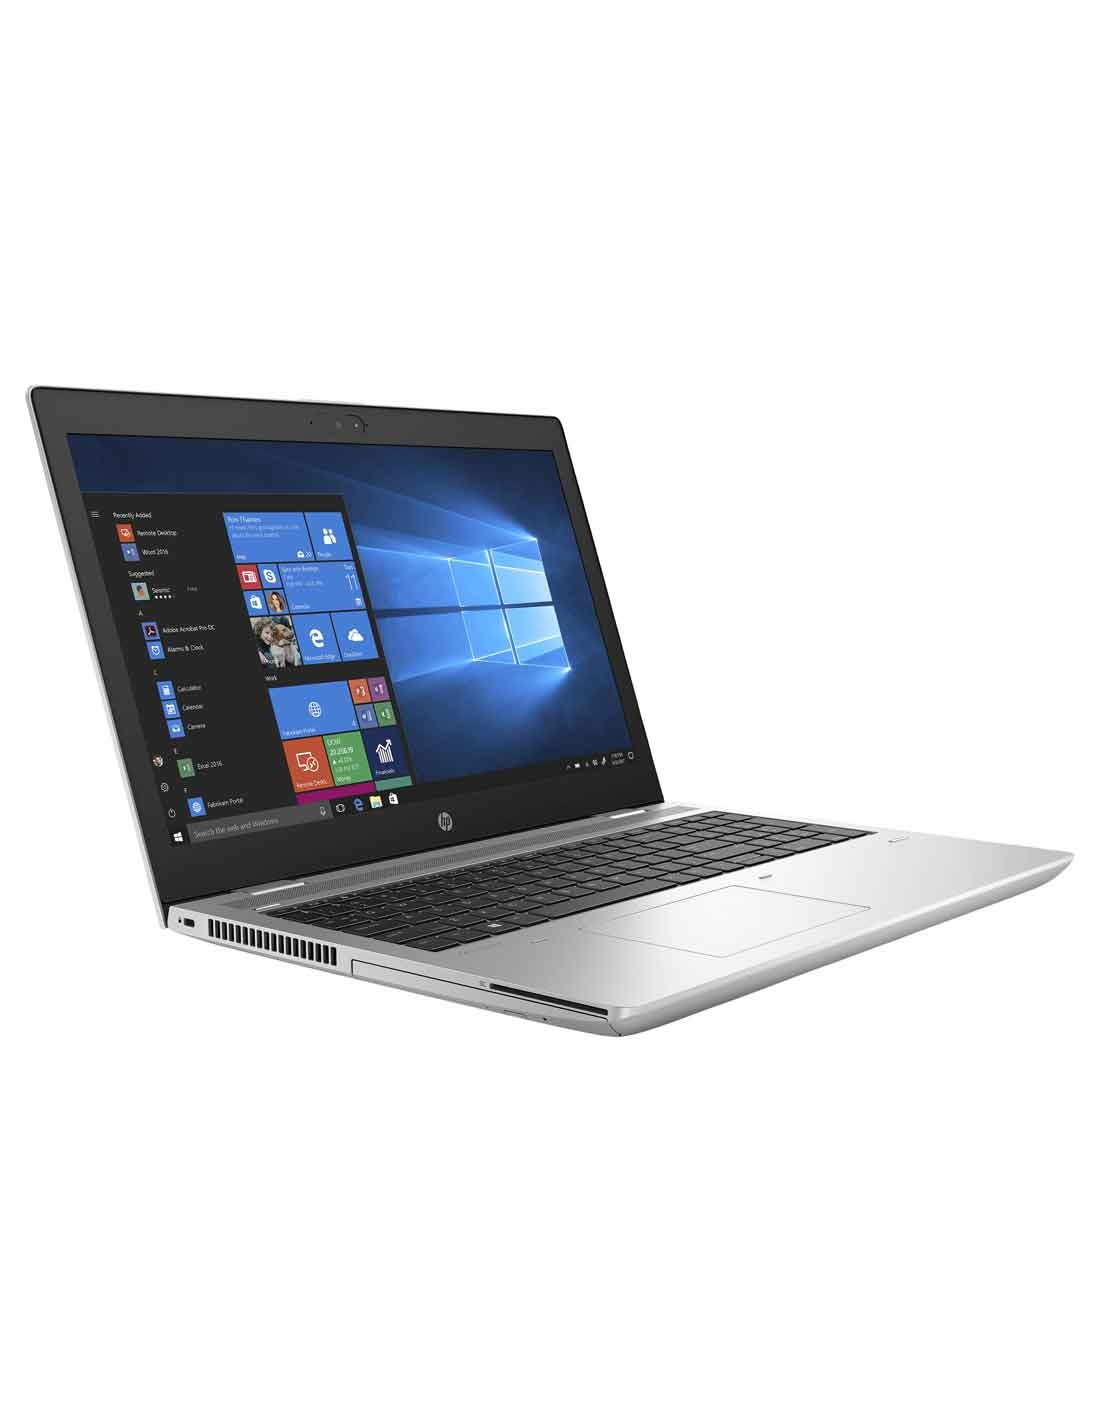 HP ProBook 650 G4 Notebook i7 at the cheapest price and fast free delivery in Dubai